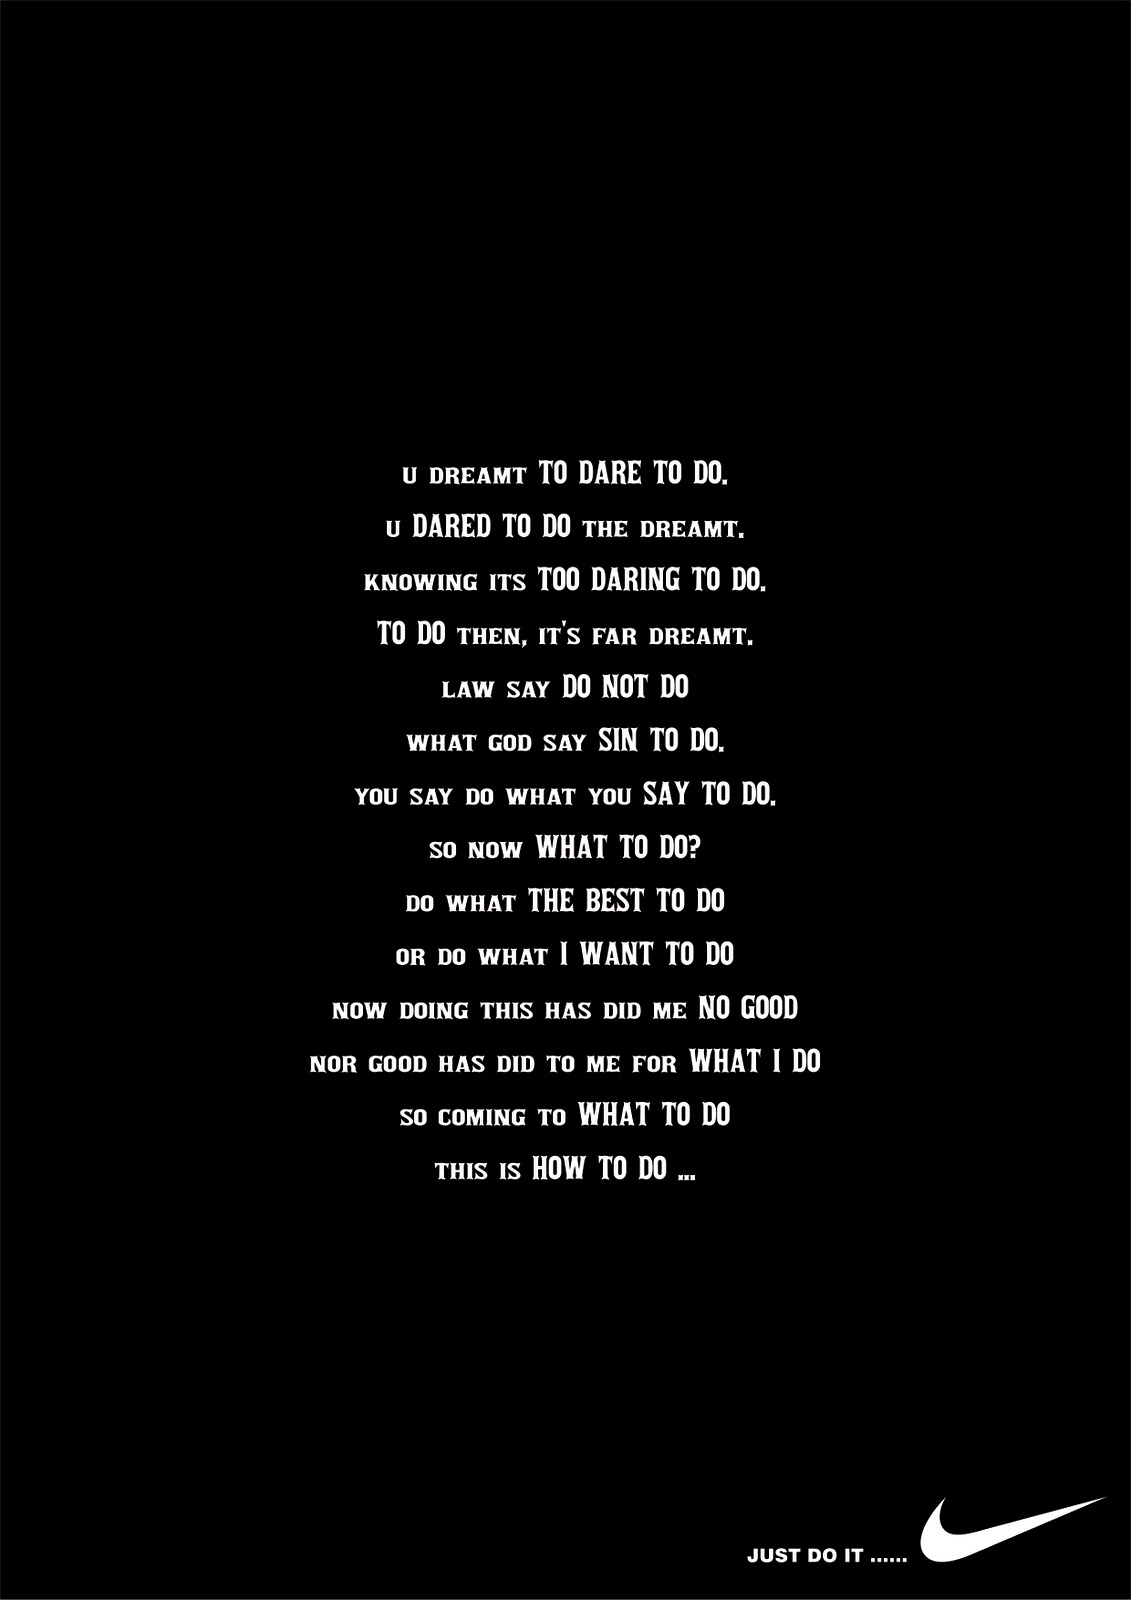 Good Just Do It Quotes Just Do It Nike Motivational Quote Wallpaper Hd Inspiring  Quotes